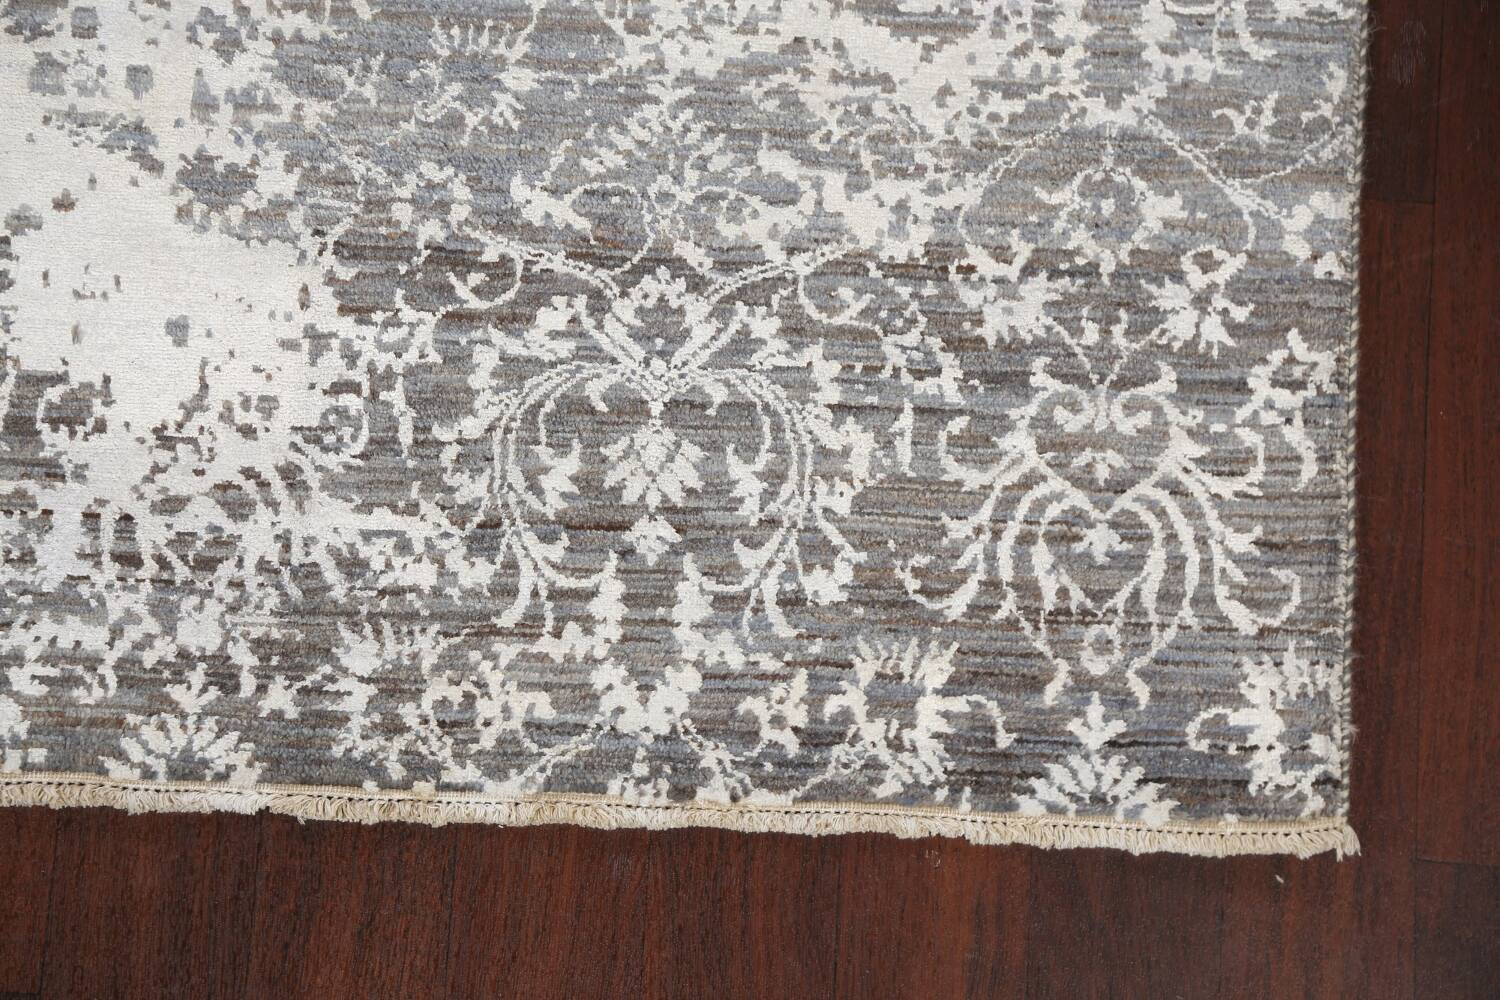 All-Over Distressed Art & Craft Oriental Area Rug 5x7 image 5